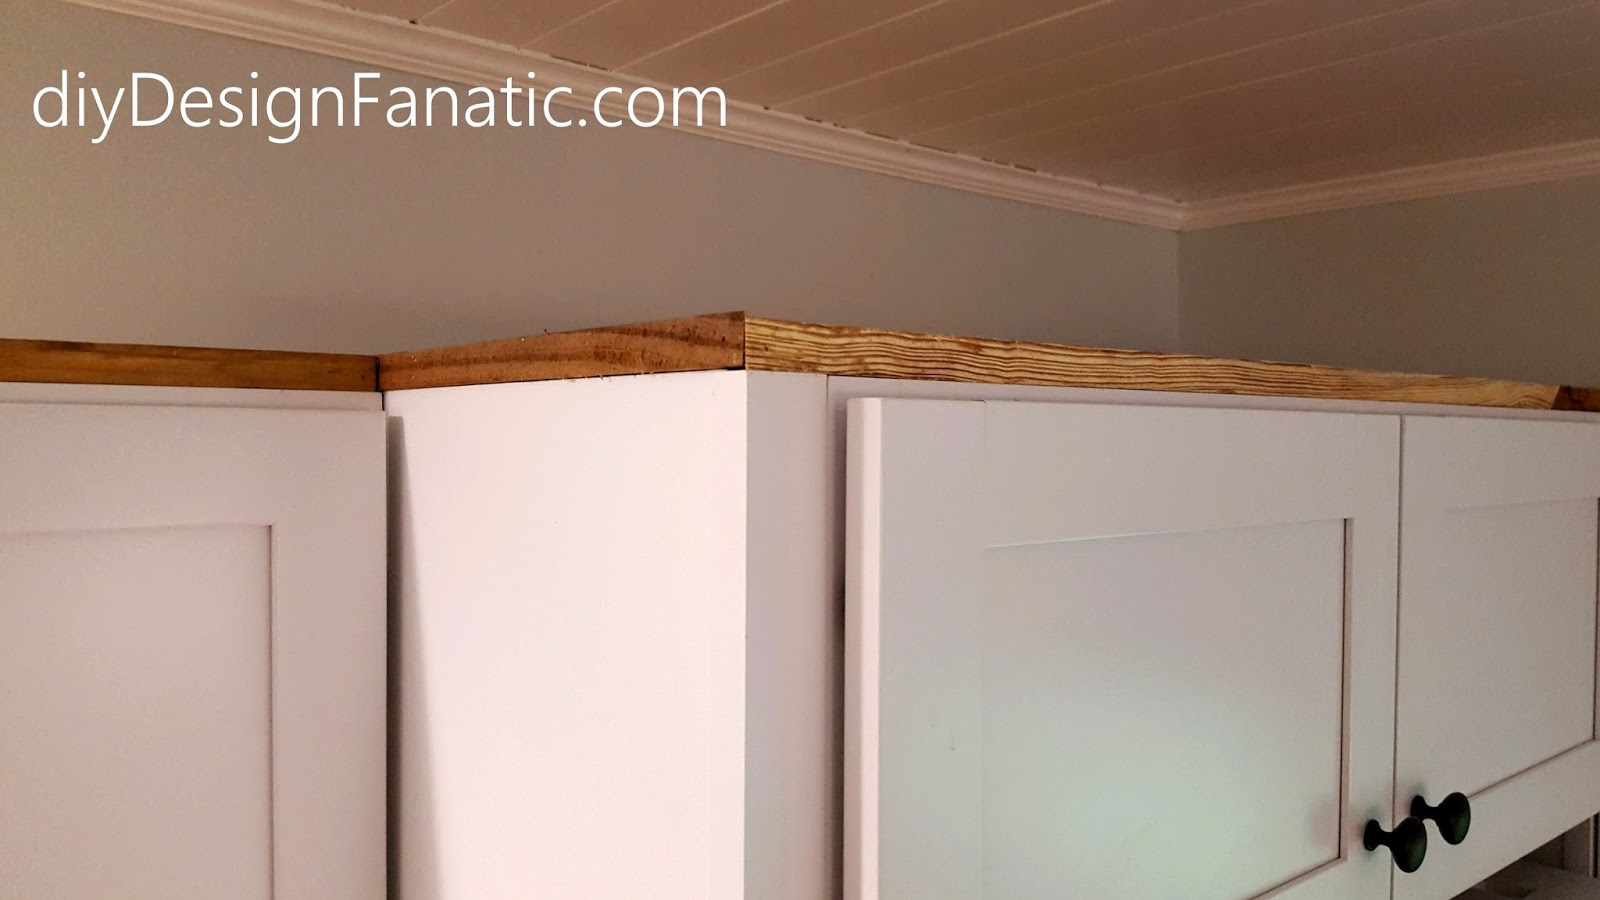 diy Design Fanatic: How To Install Crown Molding On Full Overlay ...